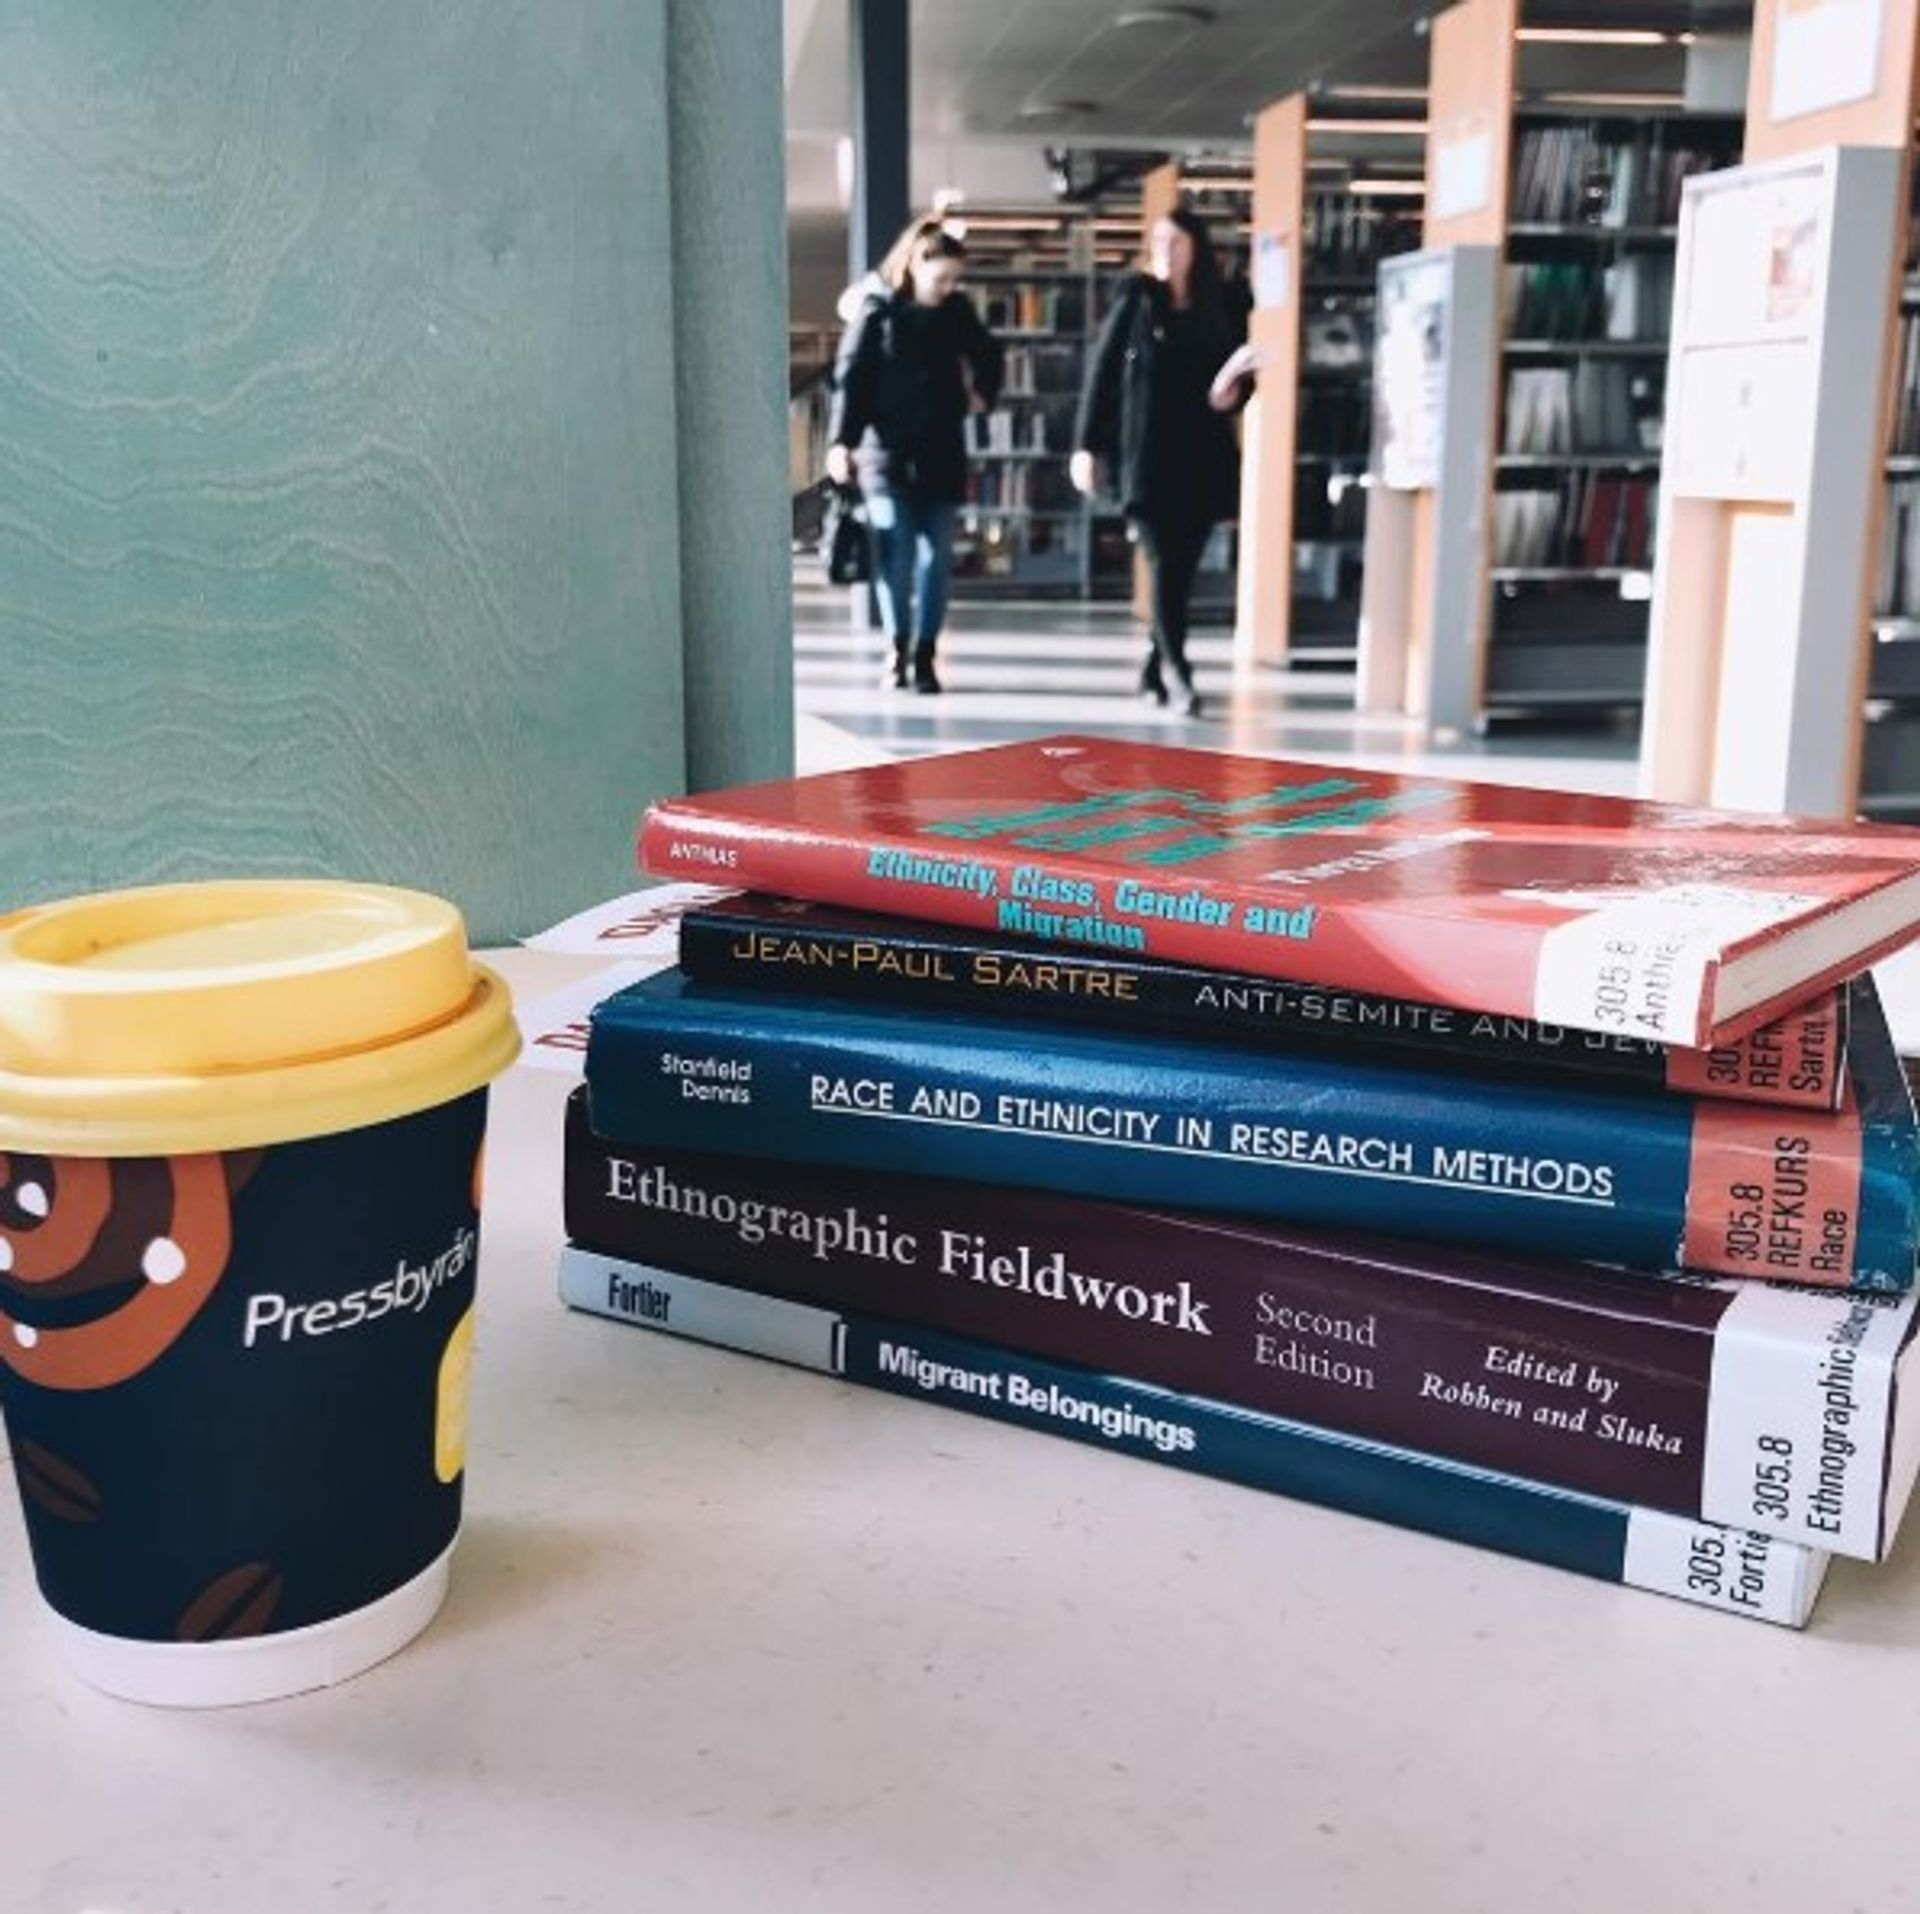 Close-up of university books and a cup of coffee.